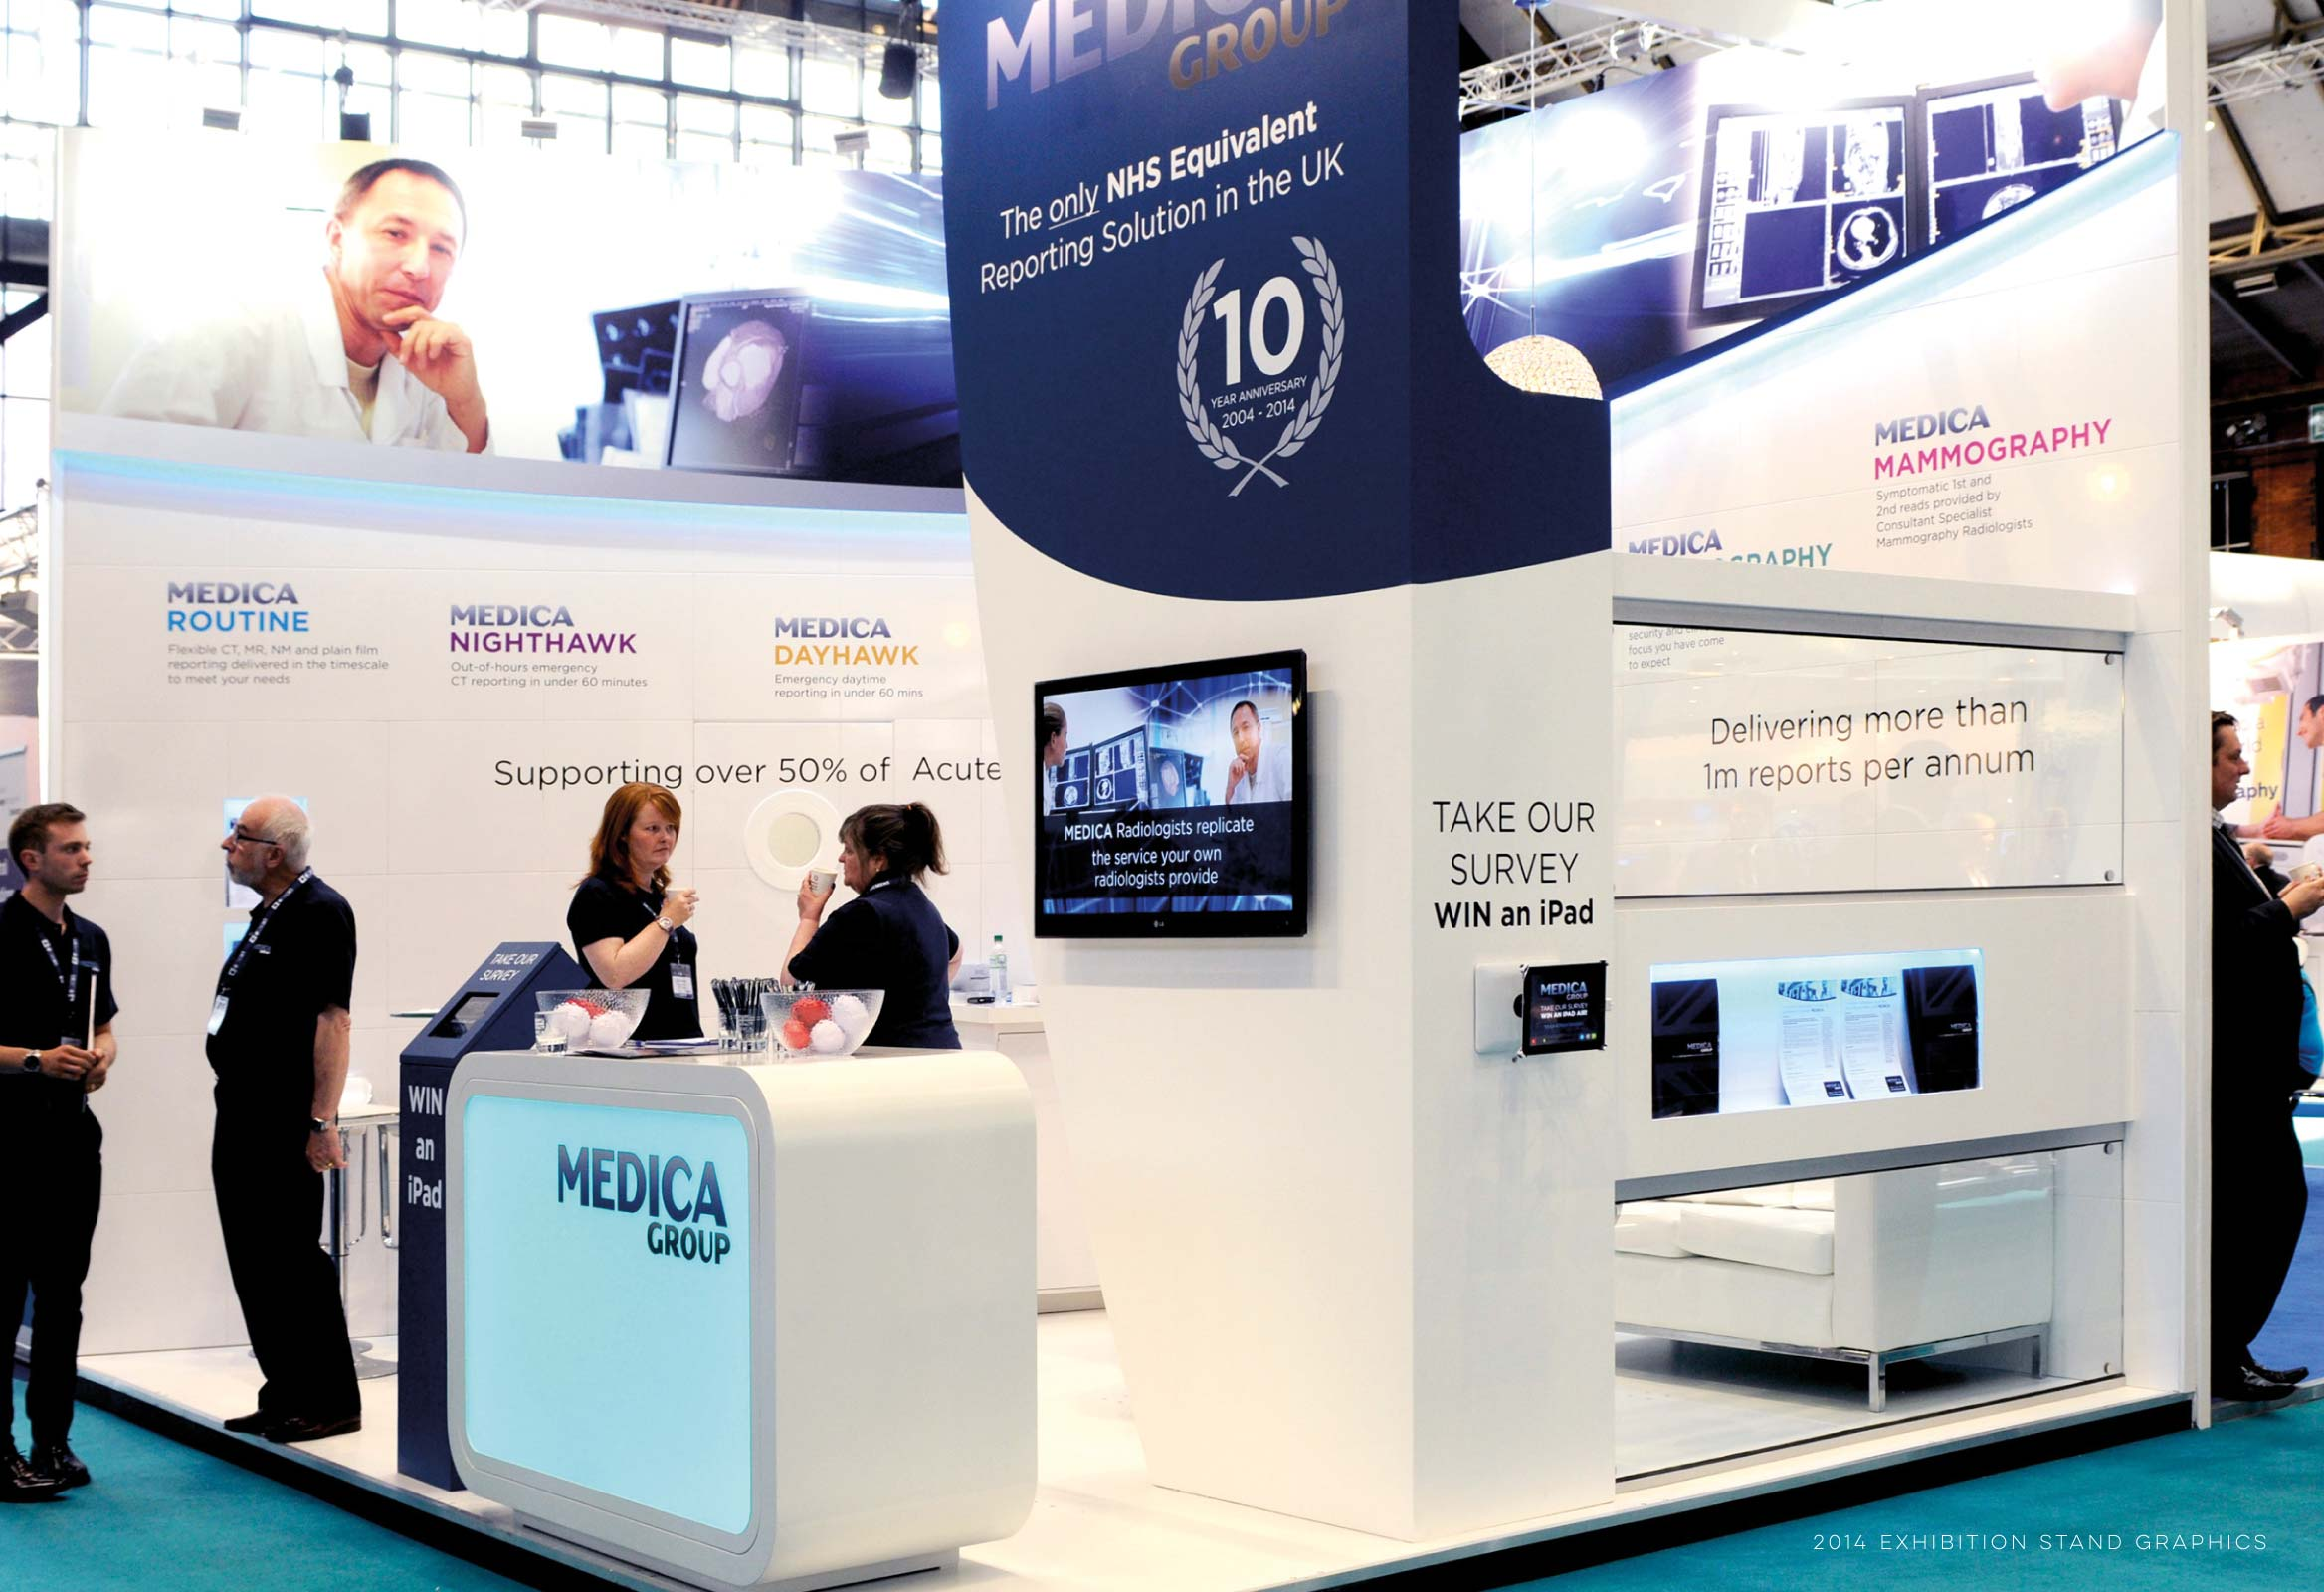 Image of Medica's Exhibition Stand for UKRC 2014 graphic design by Miller&Co